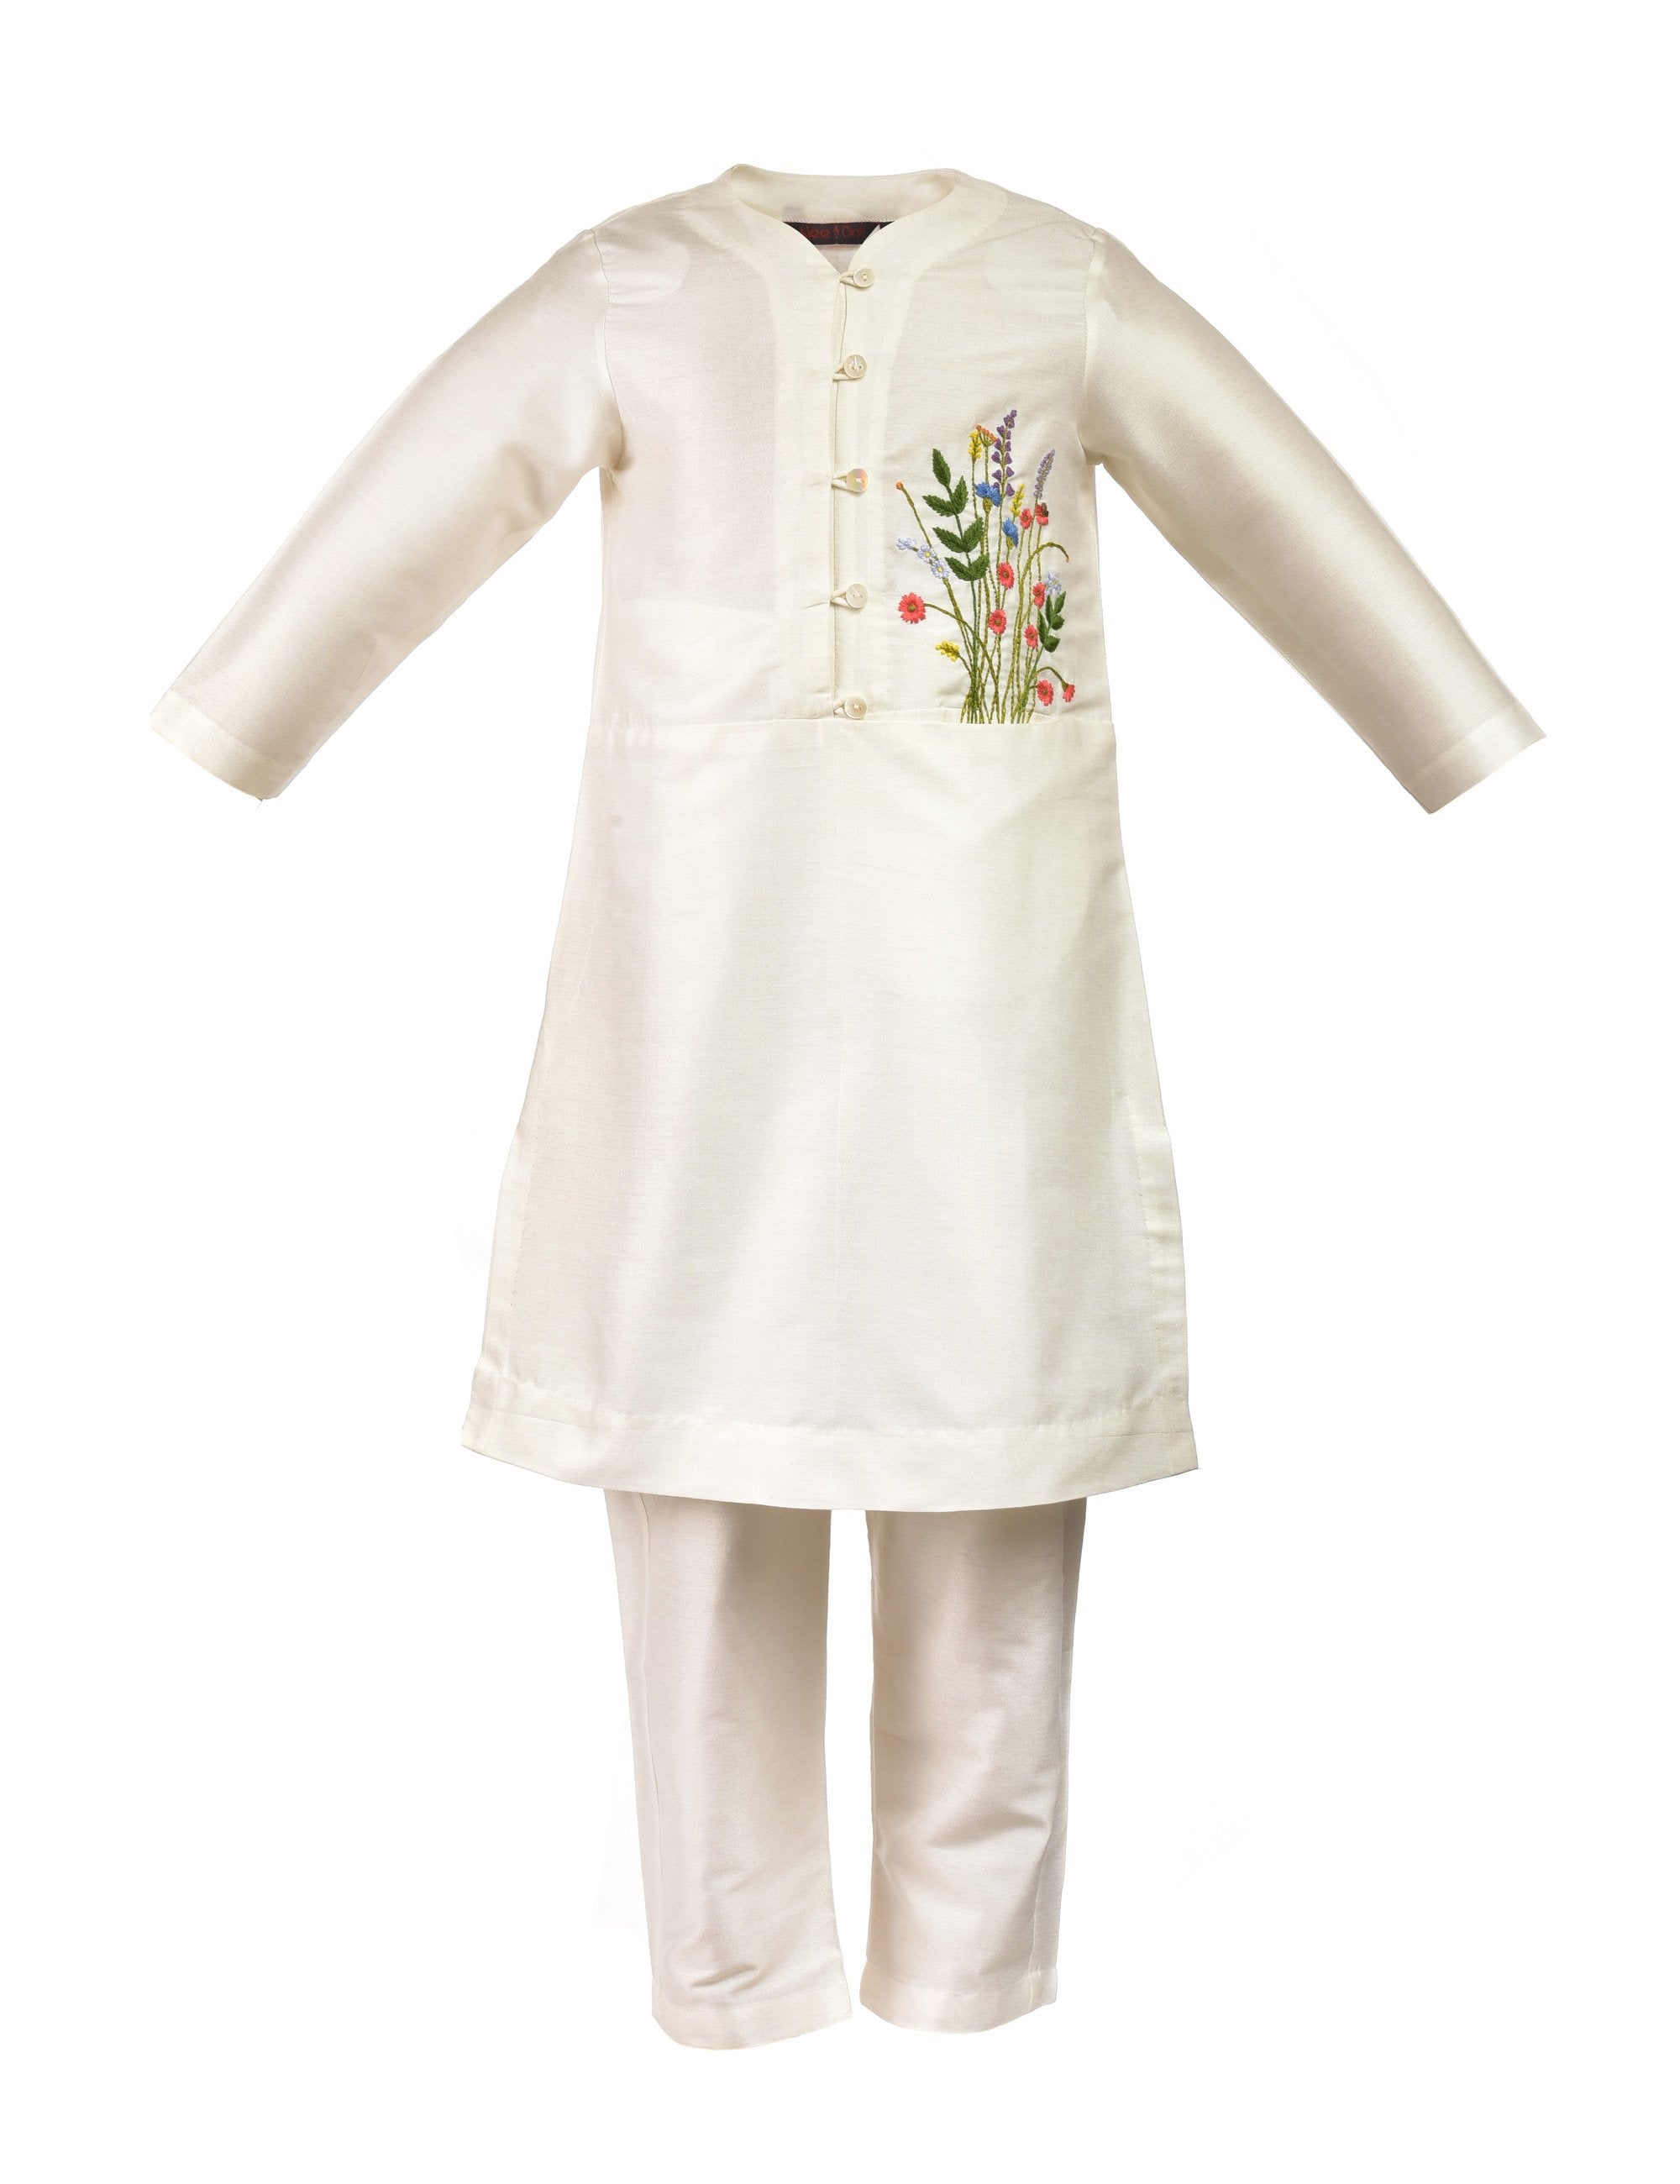 Off white kurta with flowers and leaves embroidery on side